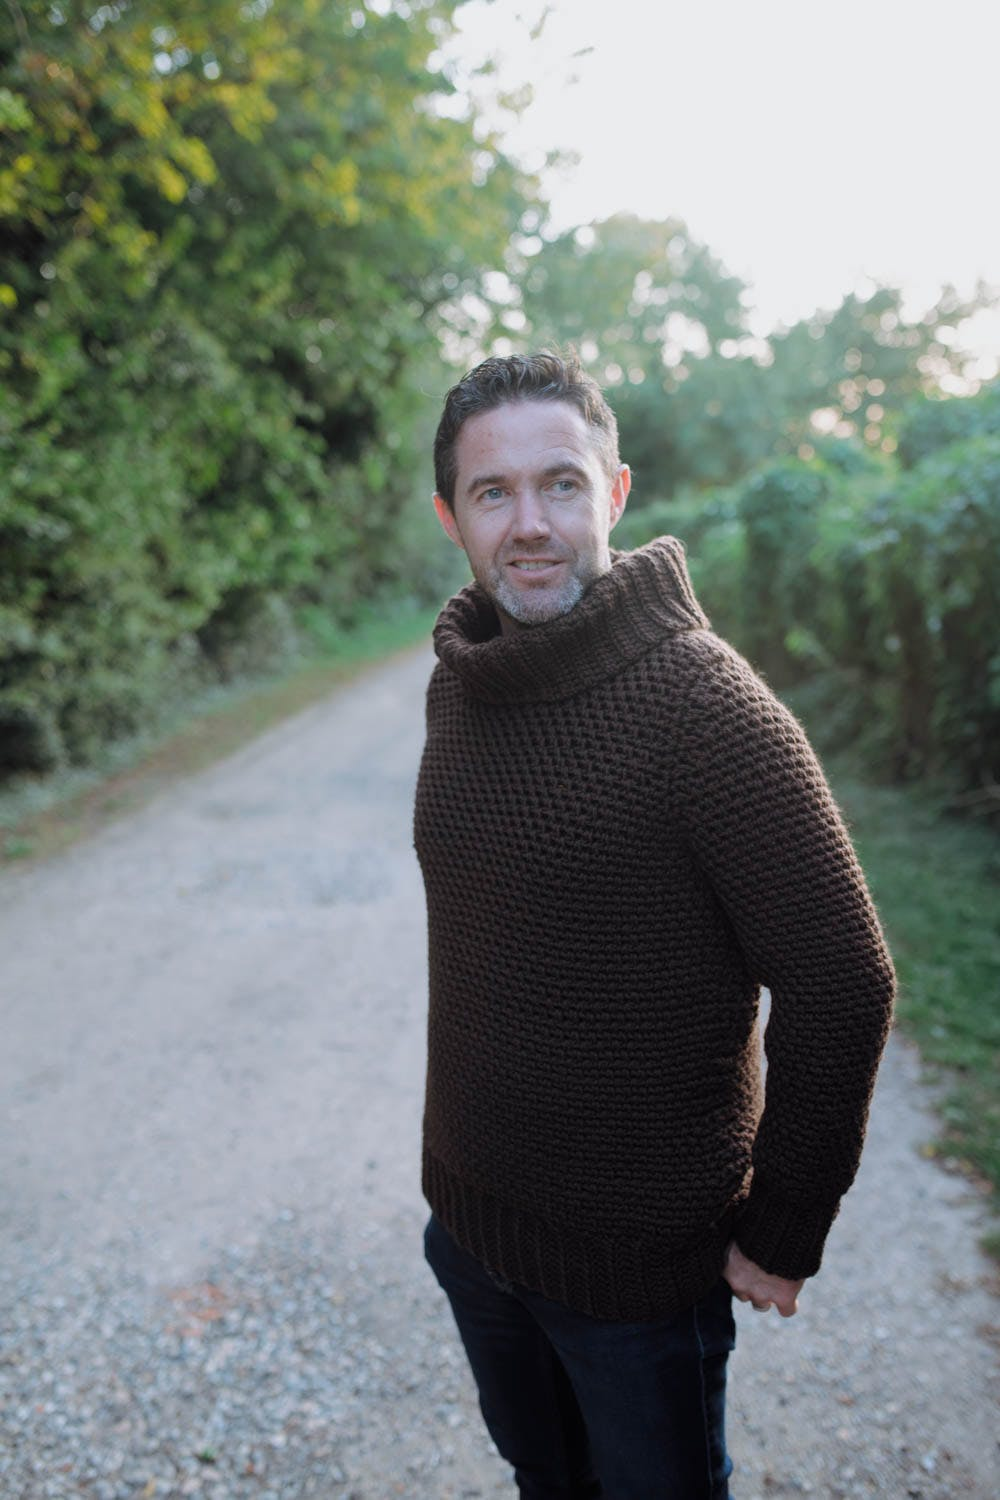 kenny wears brown jumper facing camera against a leafy background